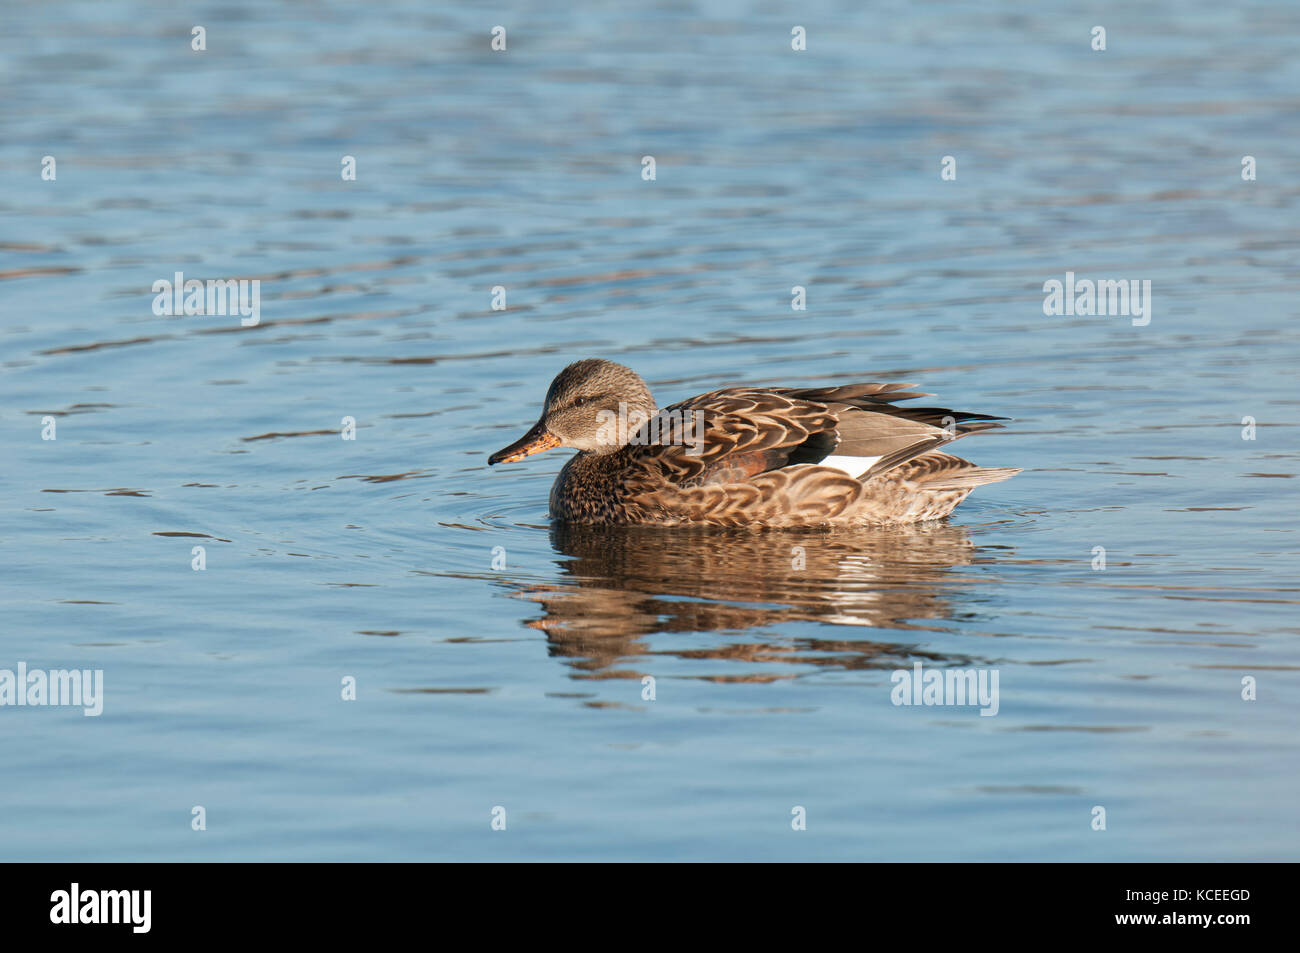 An adult female gadwall (Anas strepera) swimming on a lake at RSPB Fairburn Ings, Castleford, West Yorkshire. February. - Stock Image